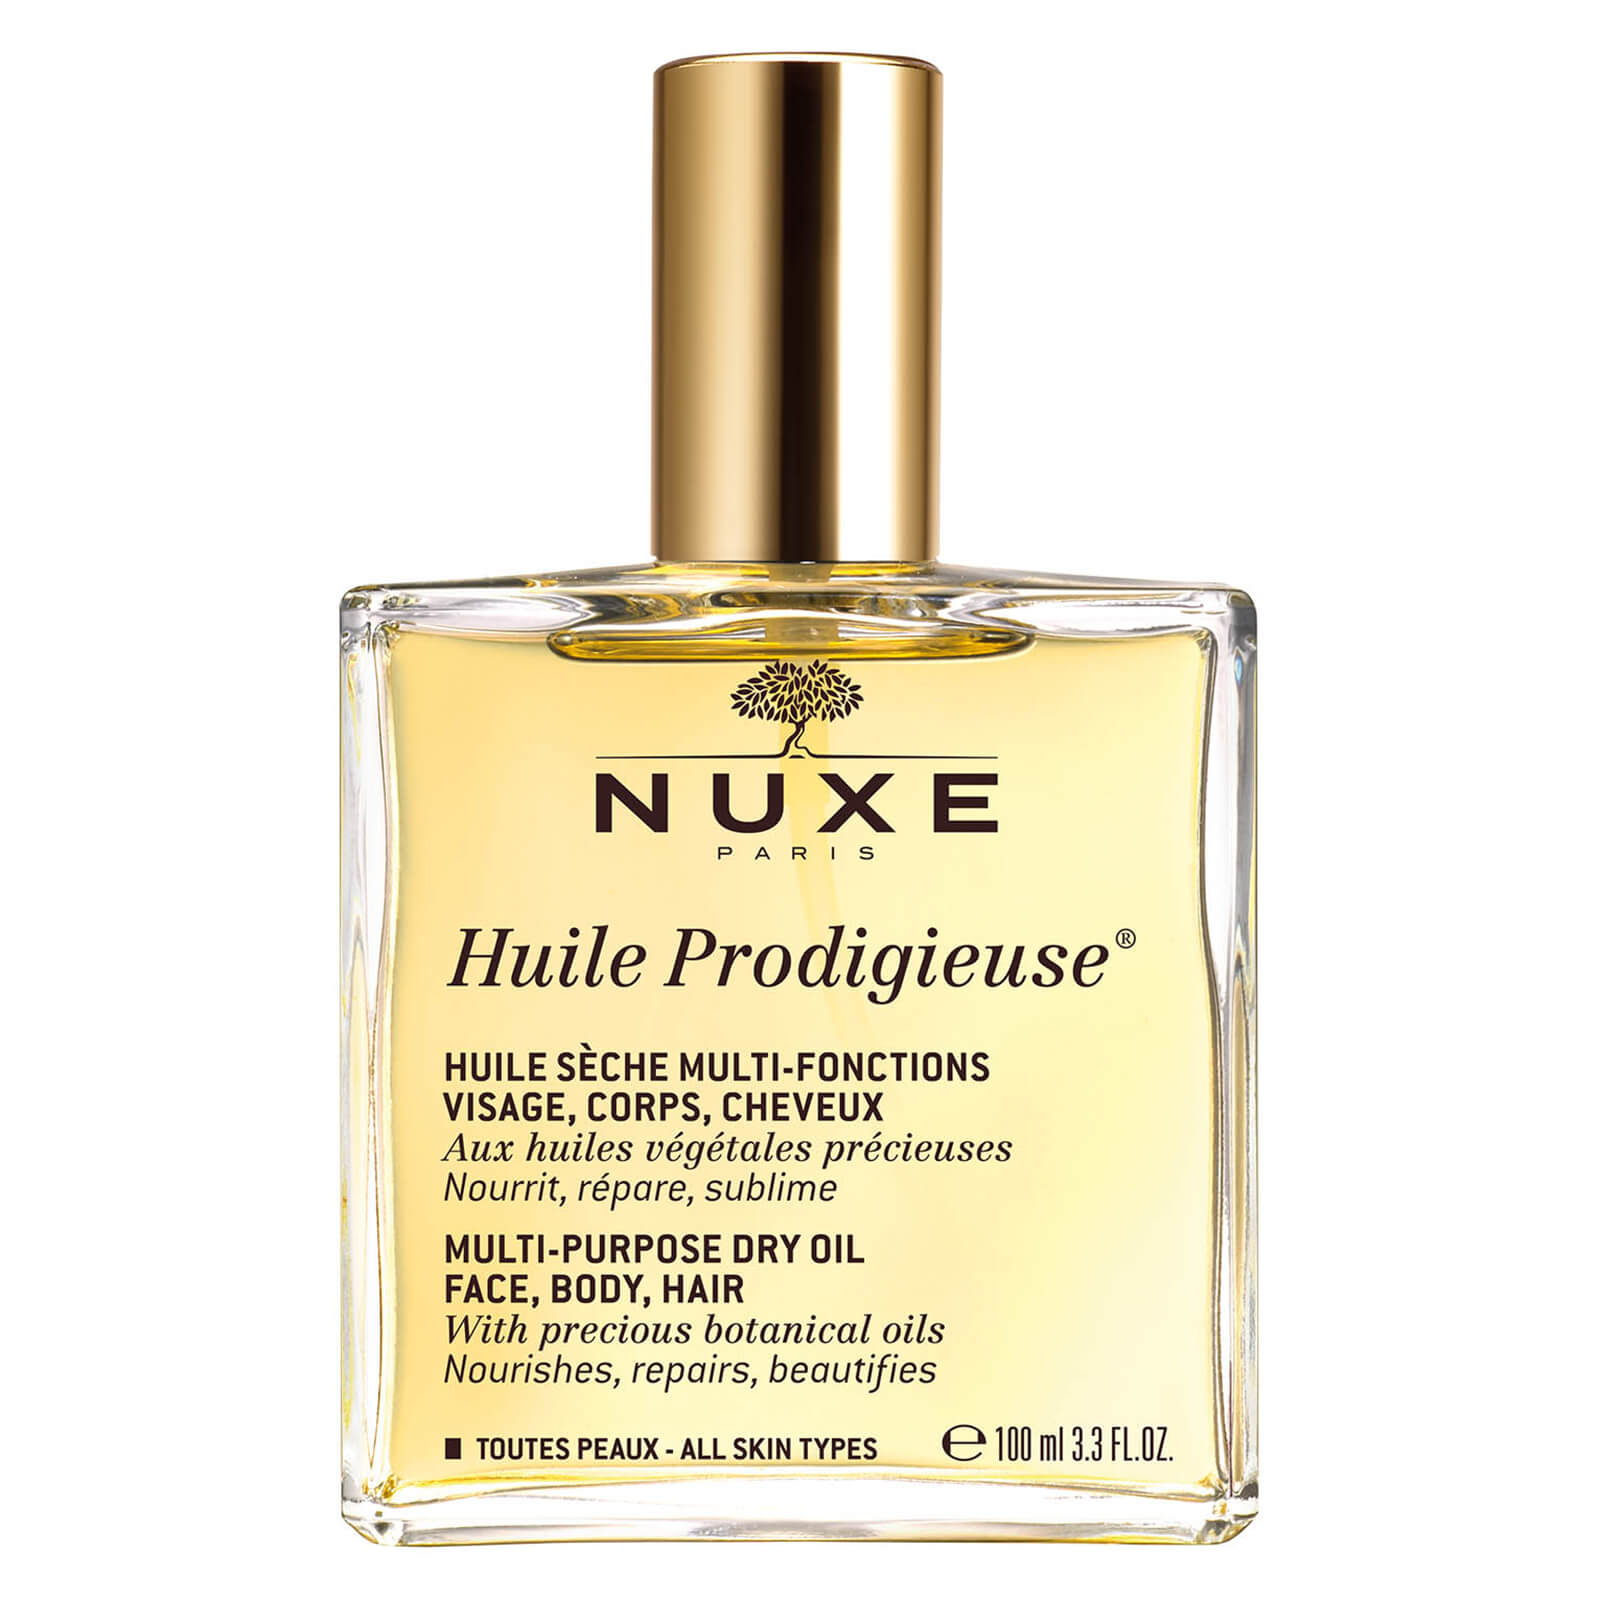 Nuxe Multi-Purpose Dry Oil